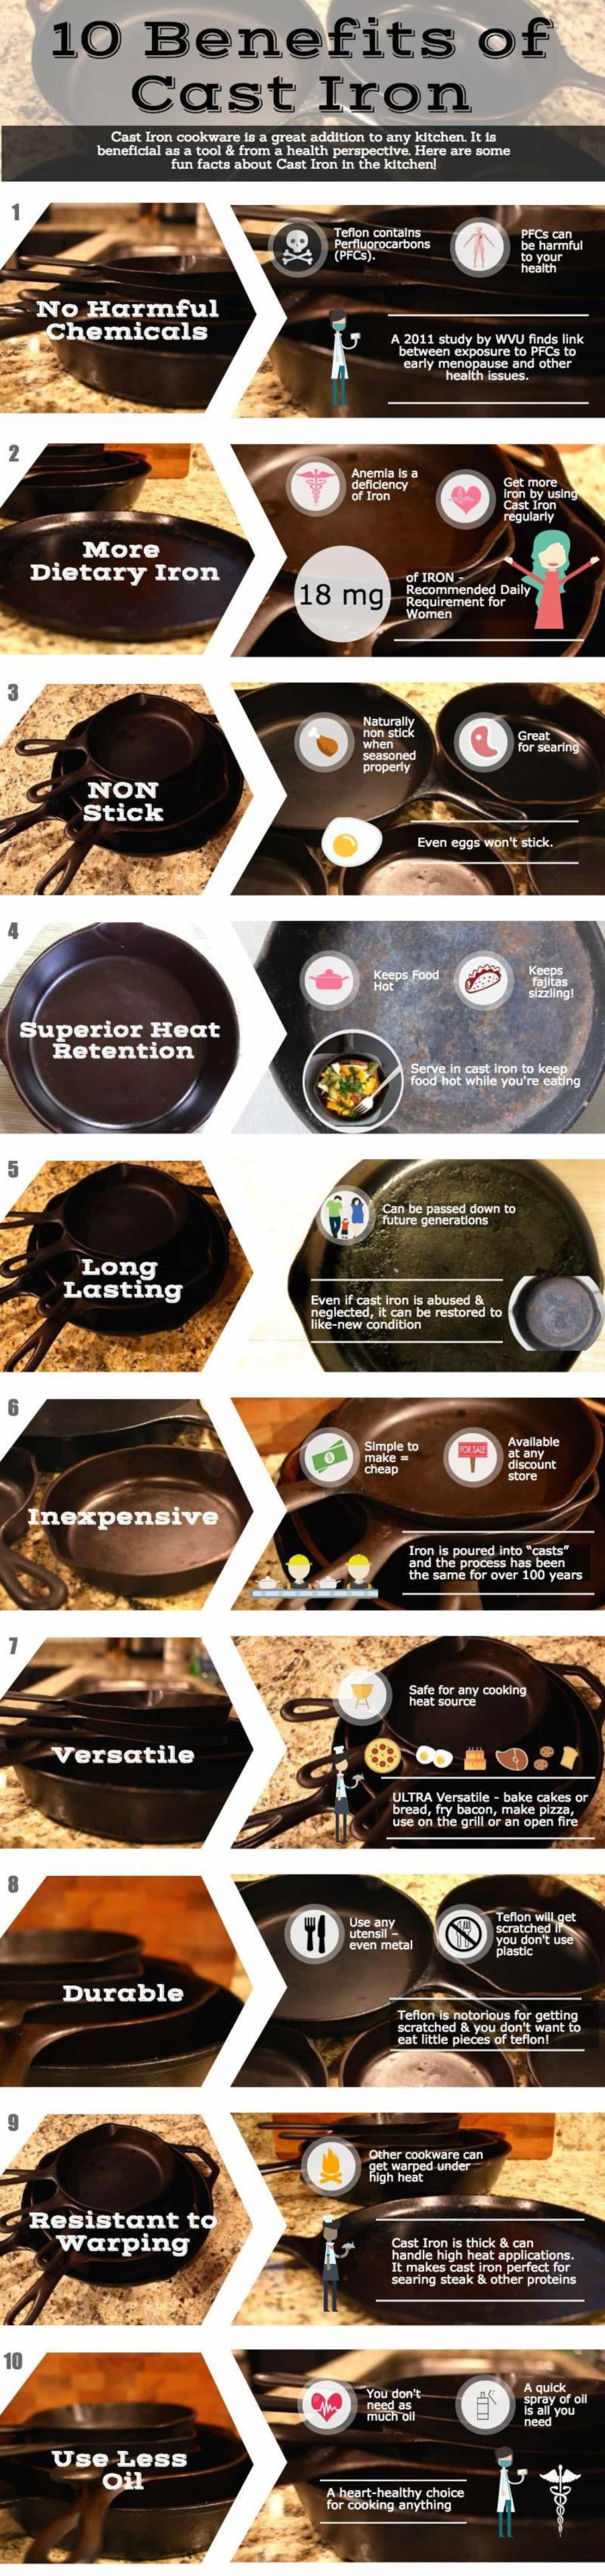 10-benefits-of-cast-iron-cookware